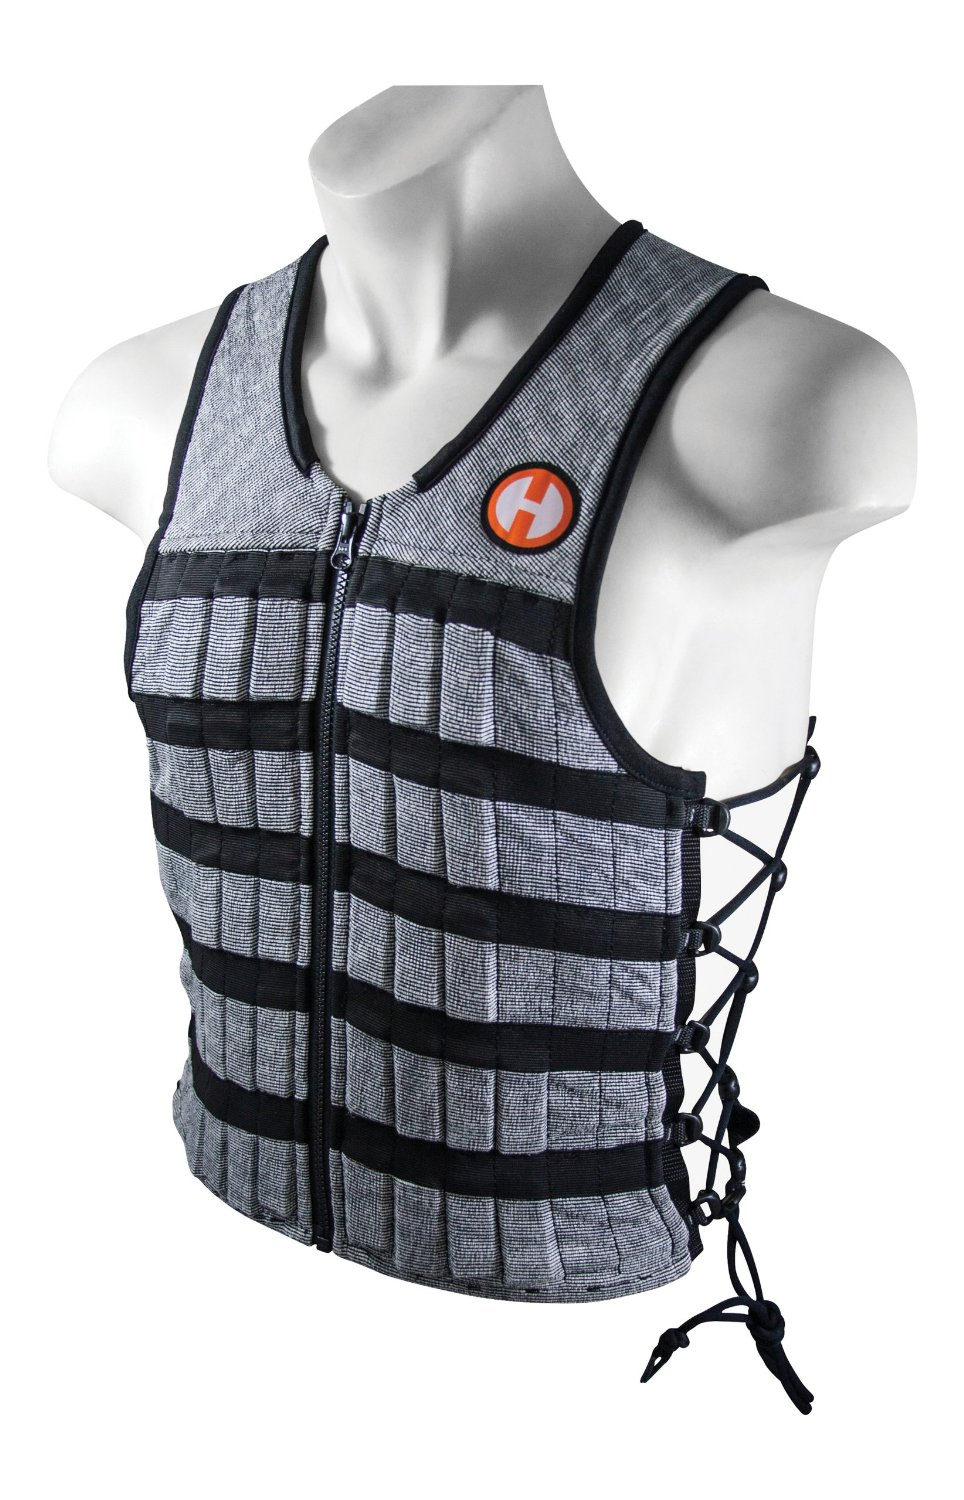 Hyperwear Hyper Vest PRO Weighted Vest